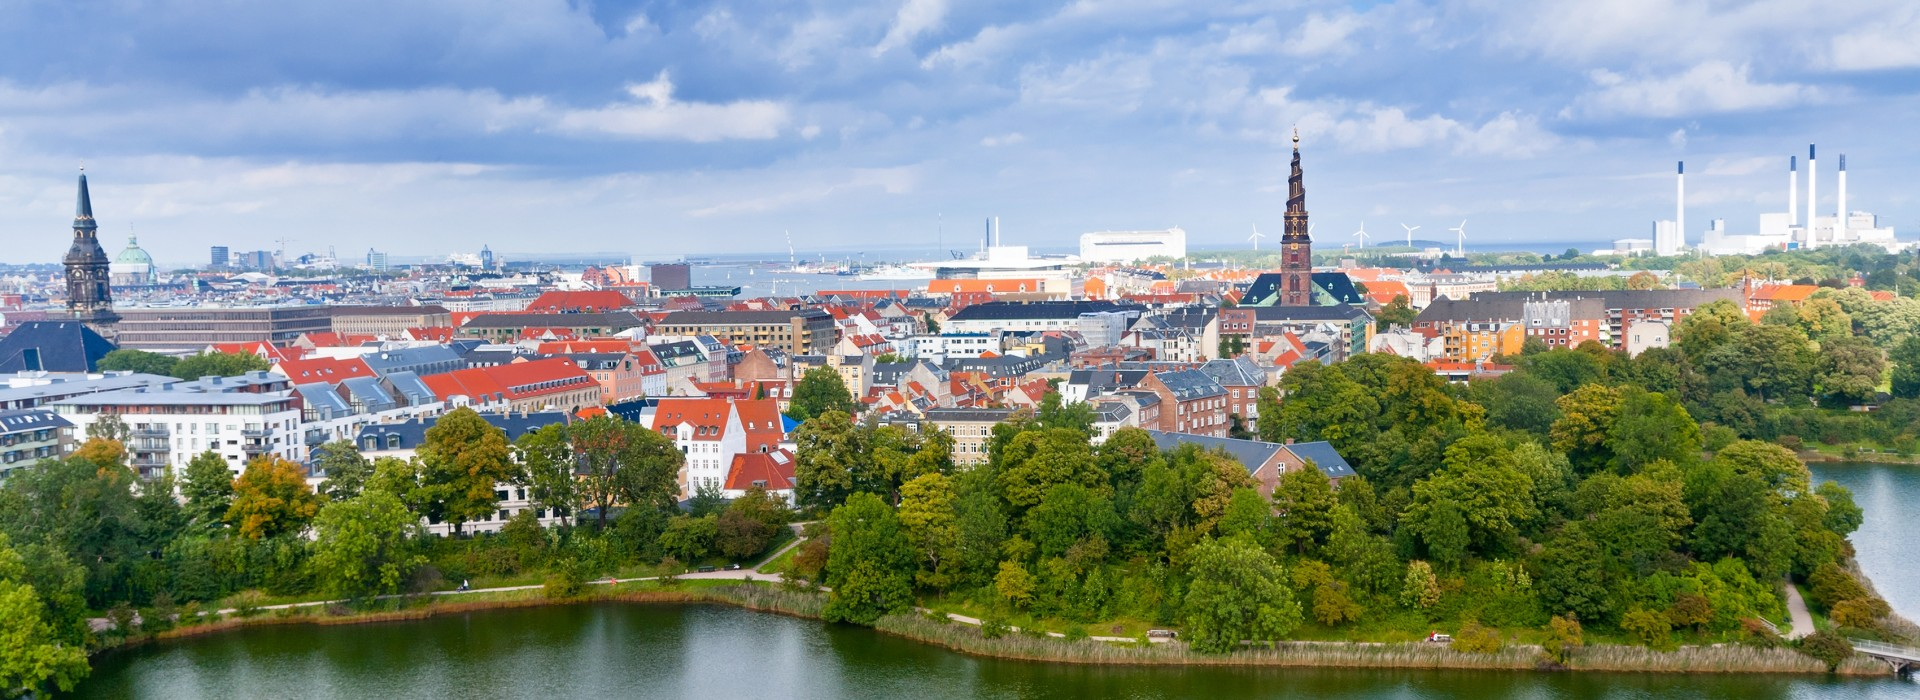 Denmark Tours and Trips to Denmark